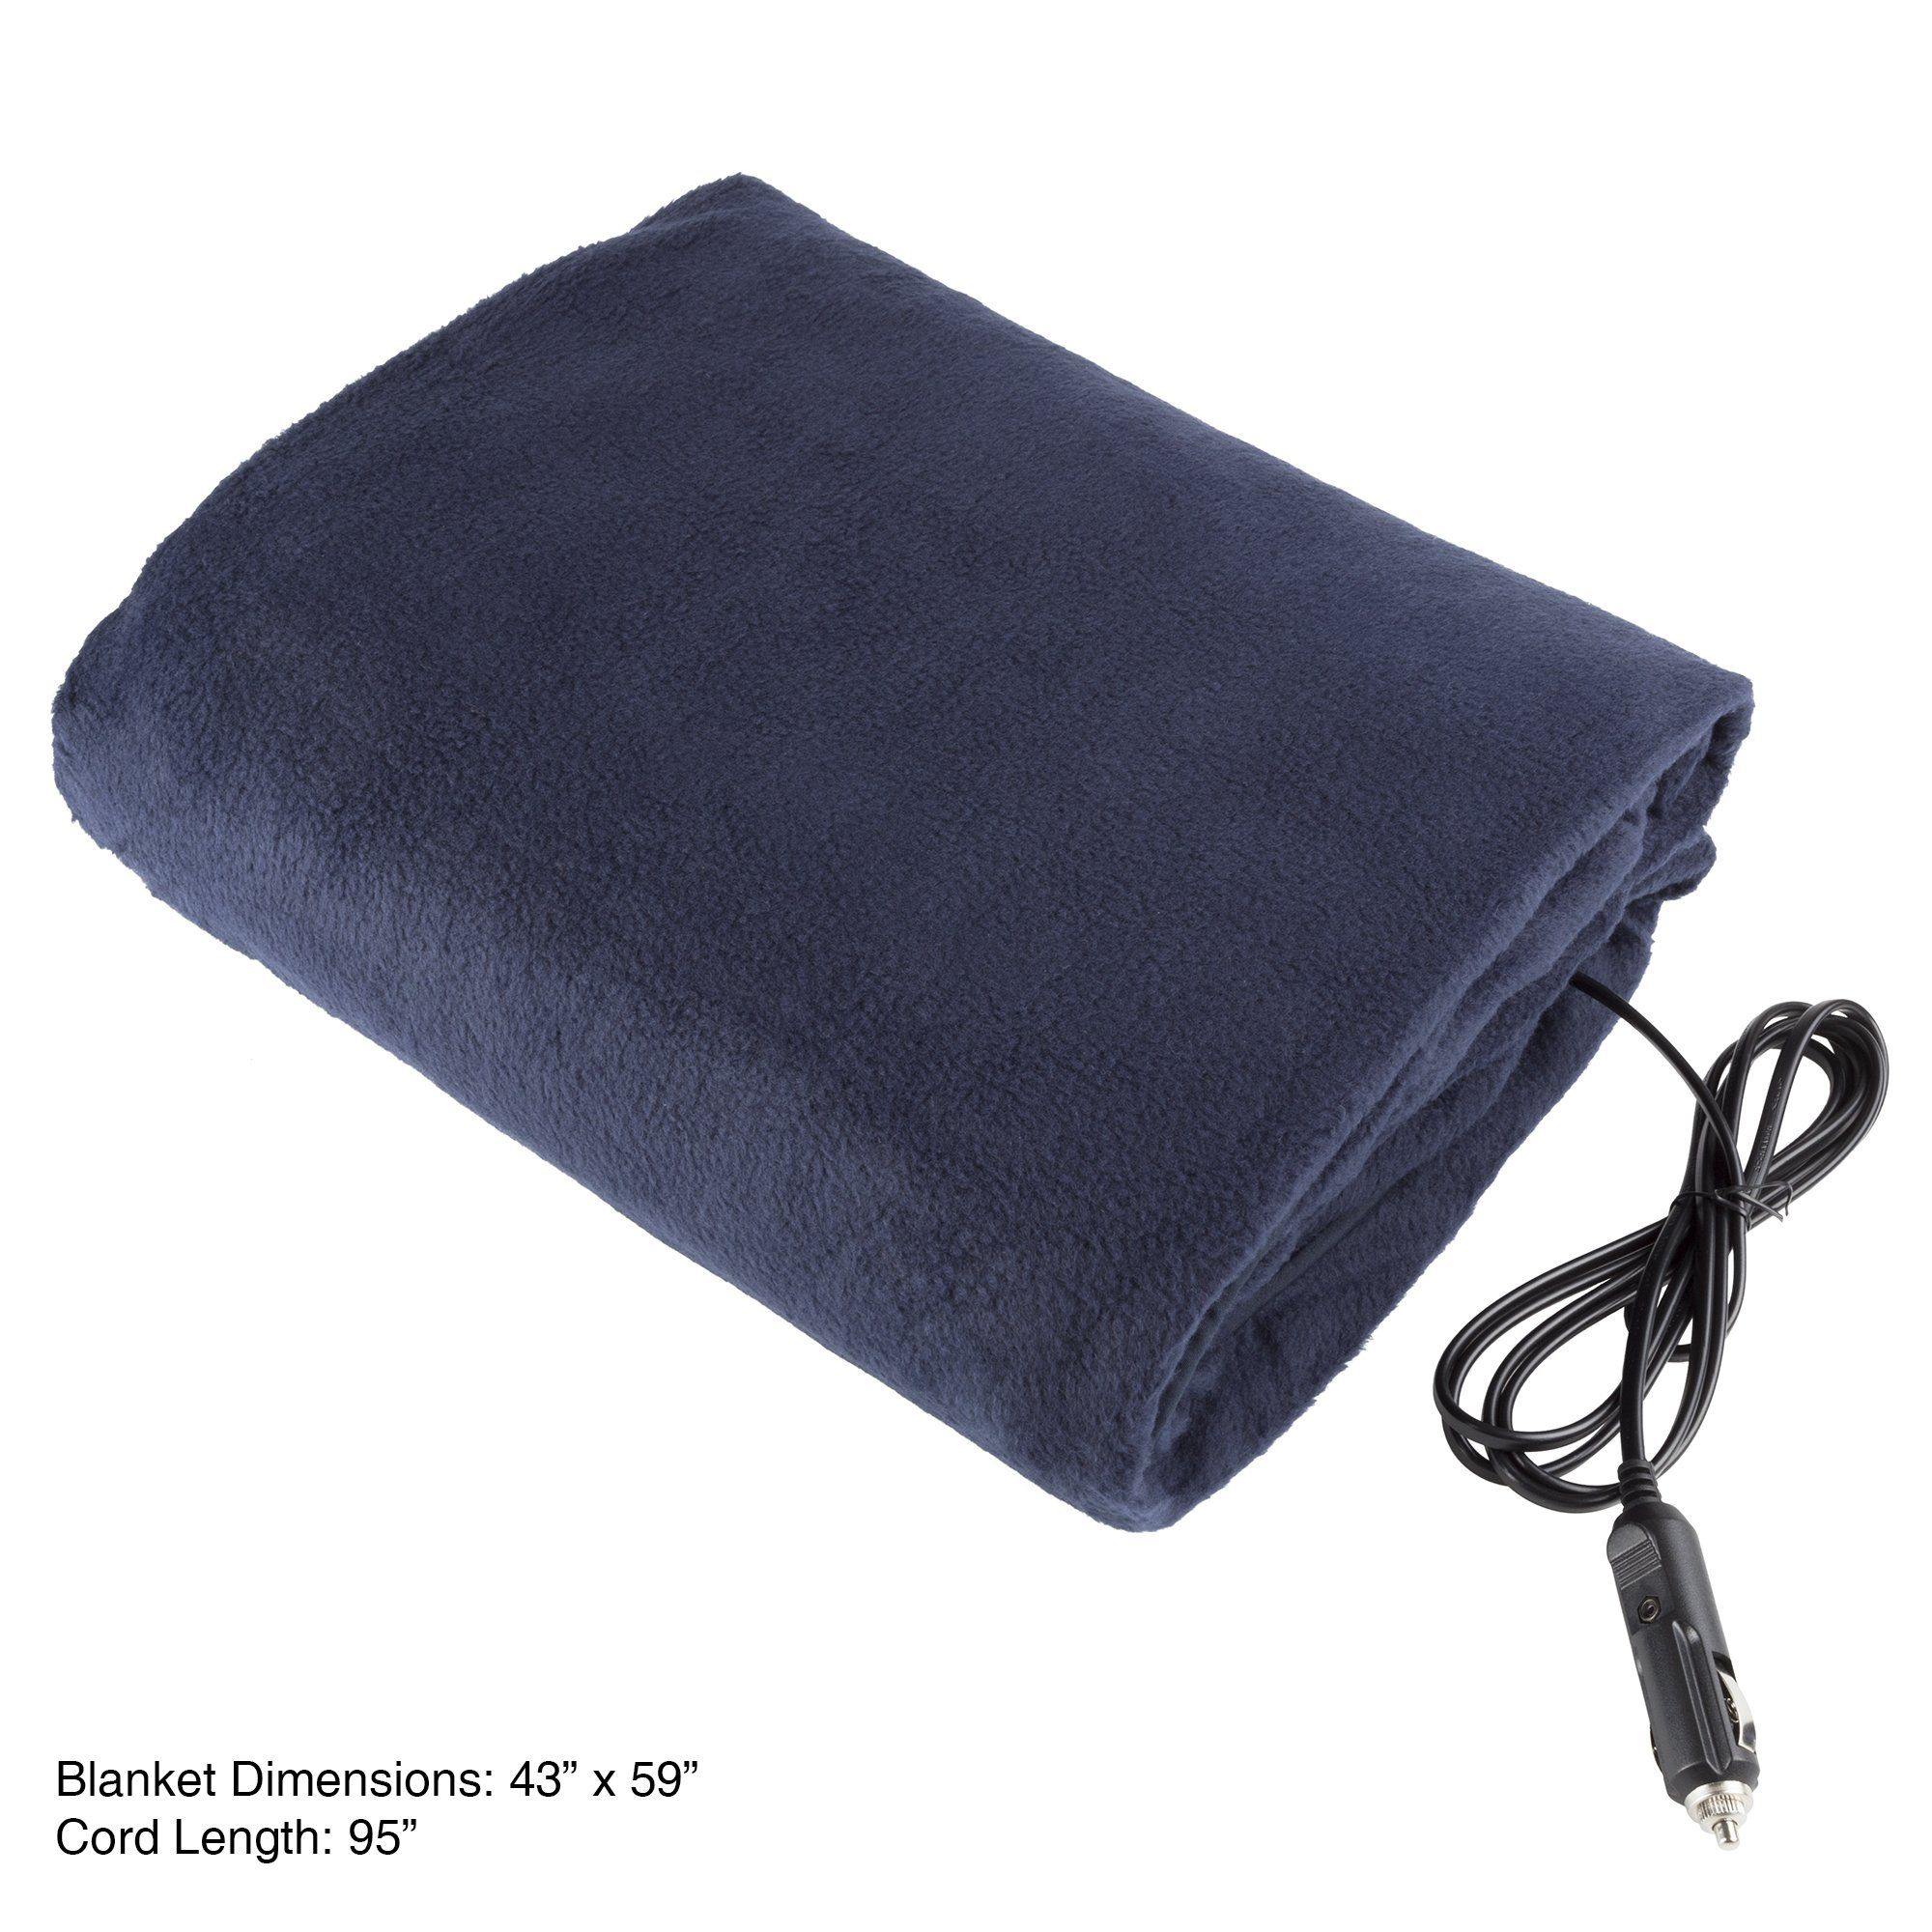 and Emergency Kits Tailgating Great for Cold Weather Electric Car Blanket- Heated 12 Volt Fleece Travel Throw for Car and RV